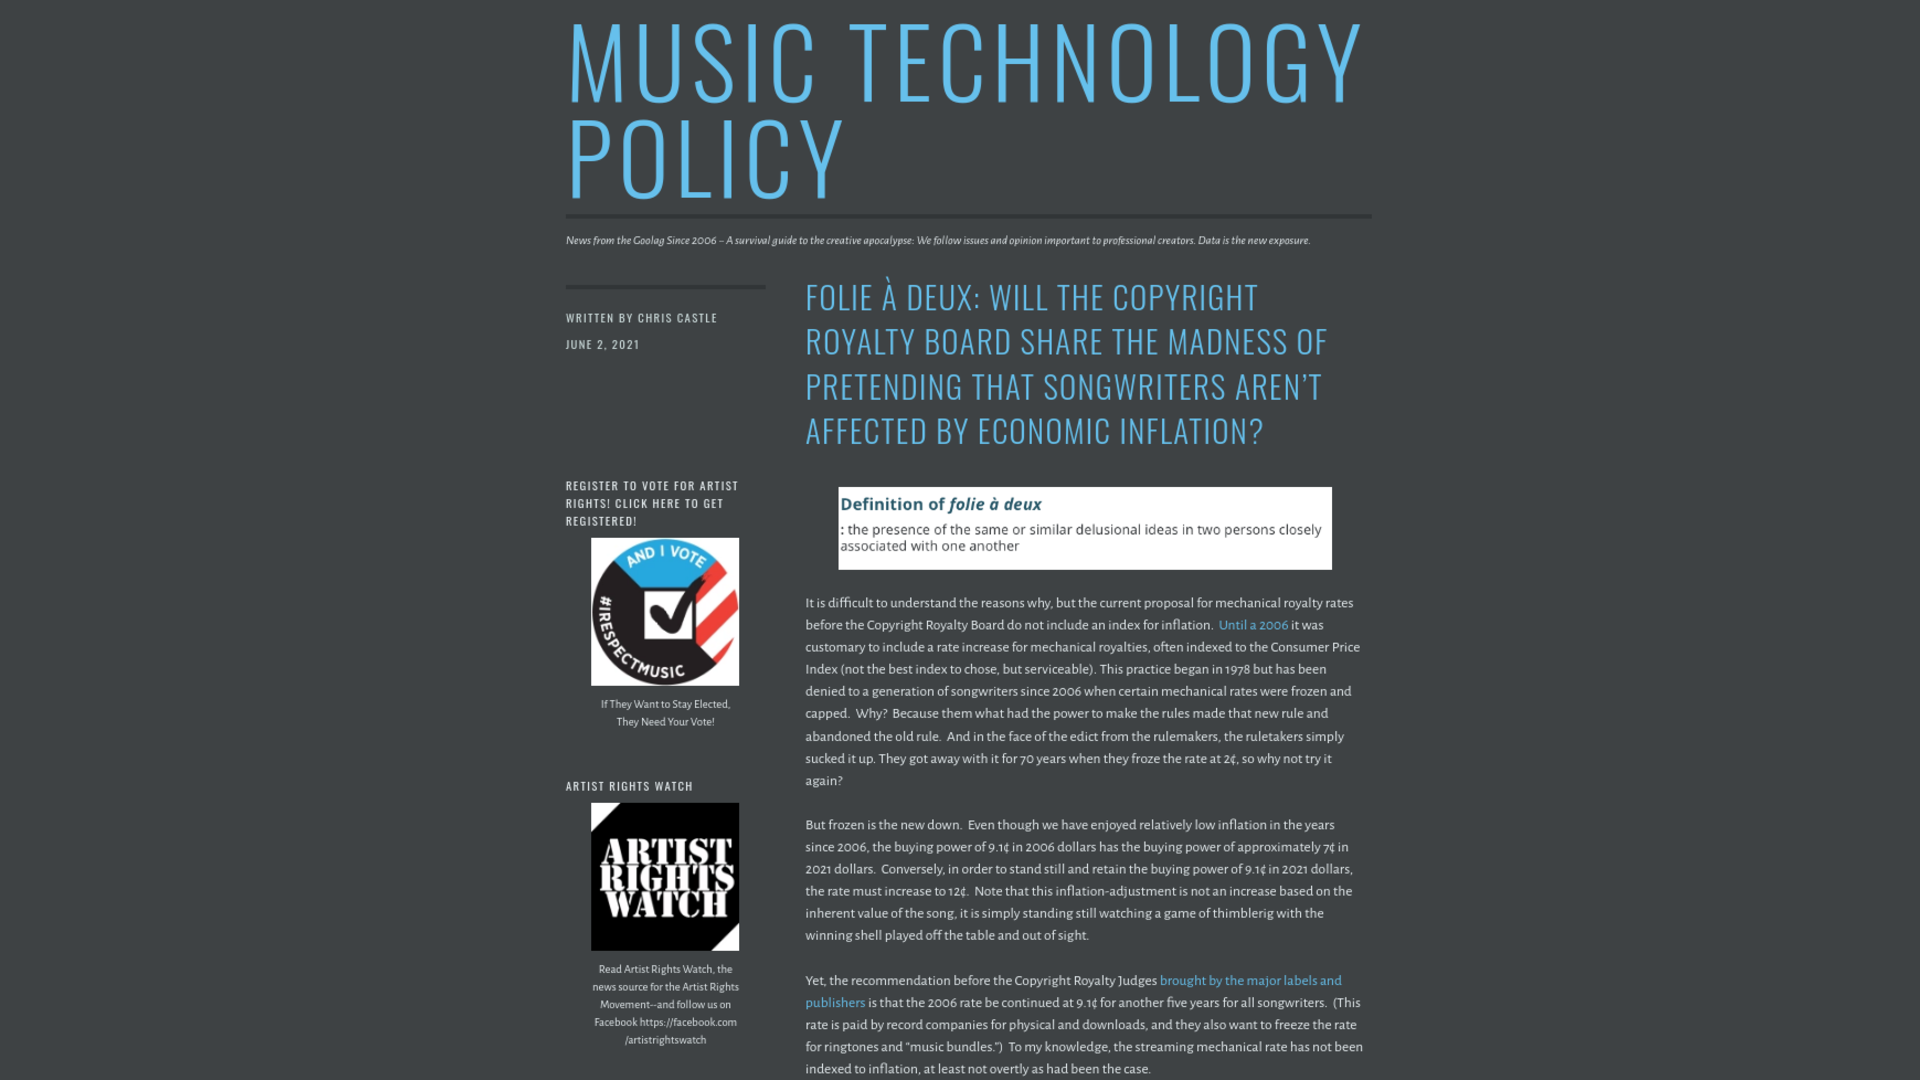 Fairness Rocks News Folie à deux: Will the Copyright Royalty Board Share the Madness of Pretending That Songwriters Aren't Affected by Economic Inflation?